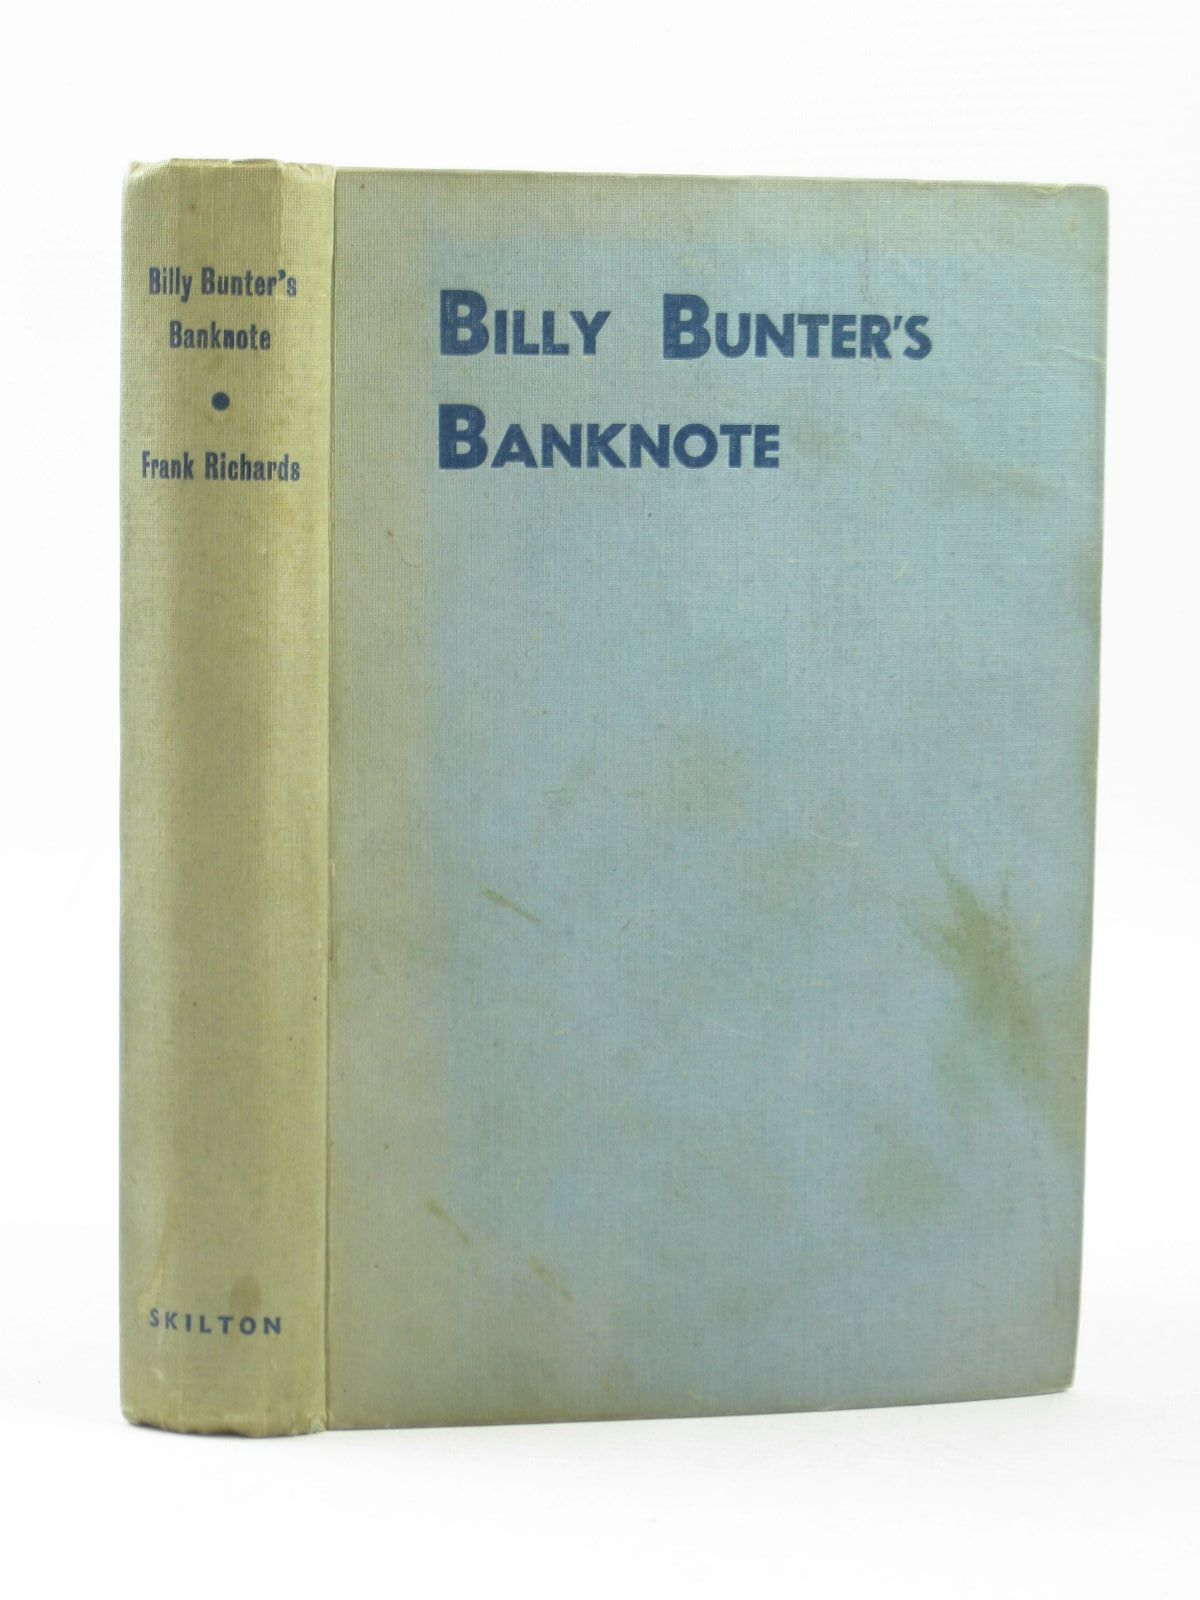 Photo of BILLY BUNTER'S BANKNOTE written by Richards, Frank illustrated by Macdonald, R.J. published by Charles Skilton (STOCK CODE: 1503734)  for sale by Stella & Rose's Books